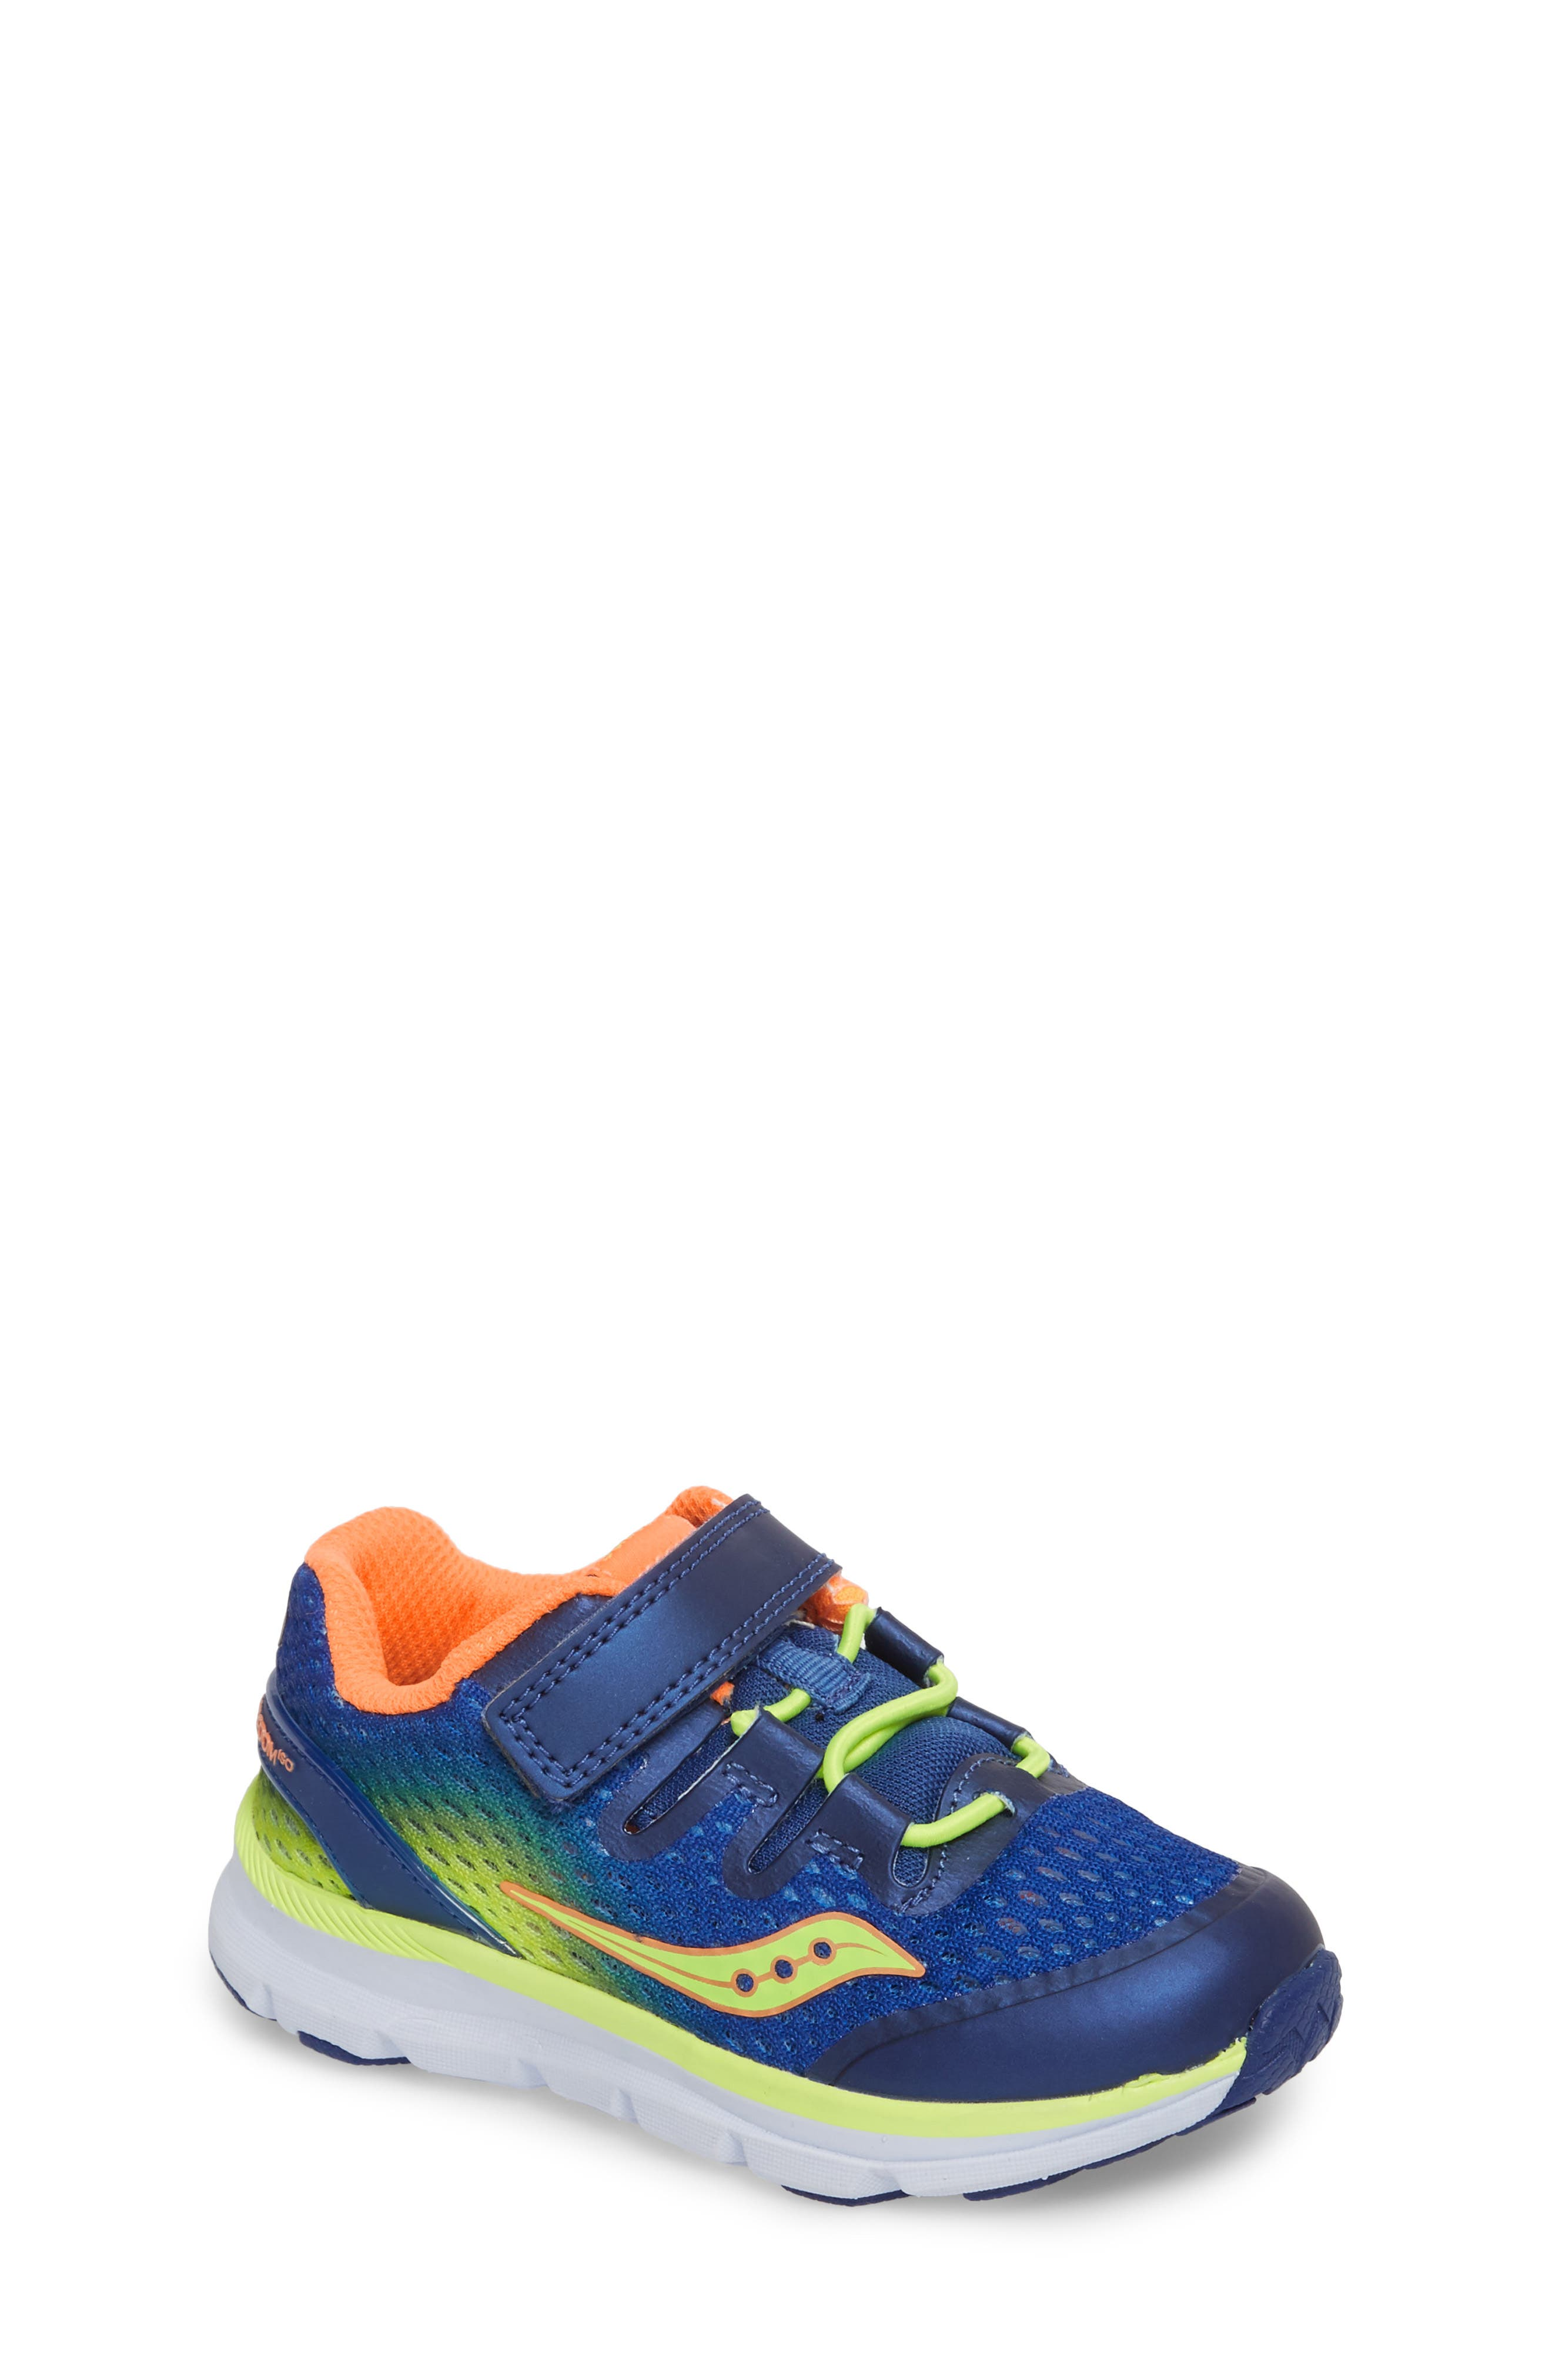 Baby Freedom ISO Sneaker,                         Main,                         color, 400